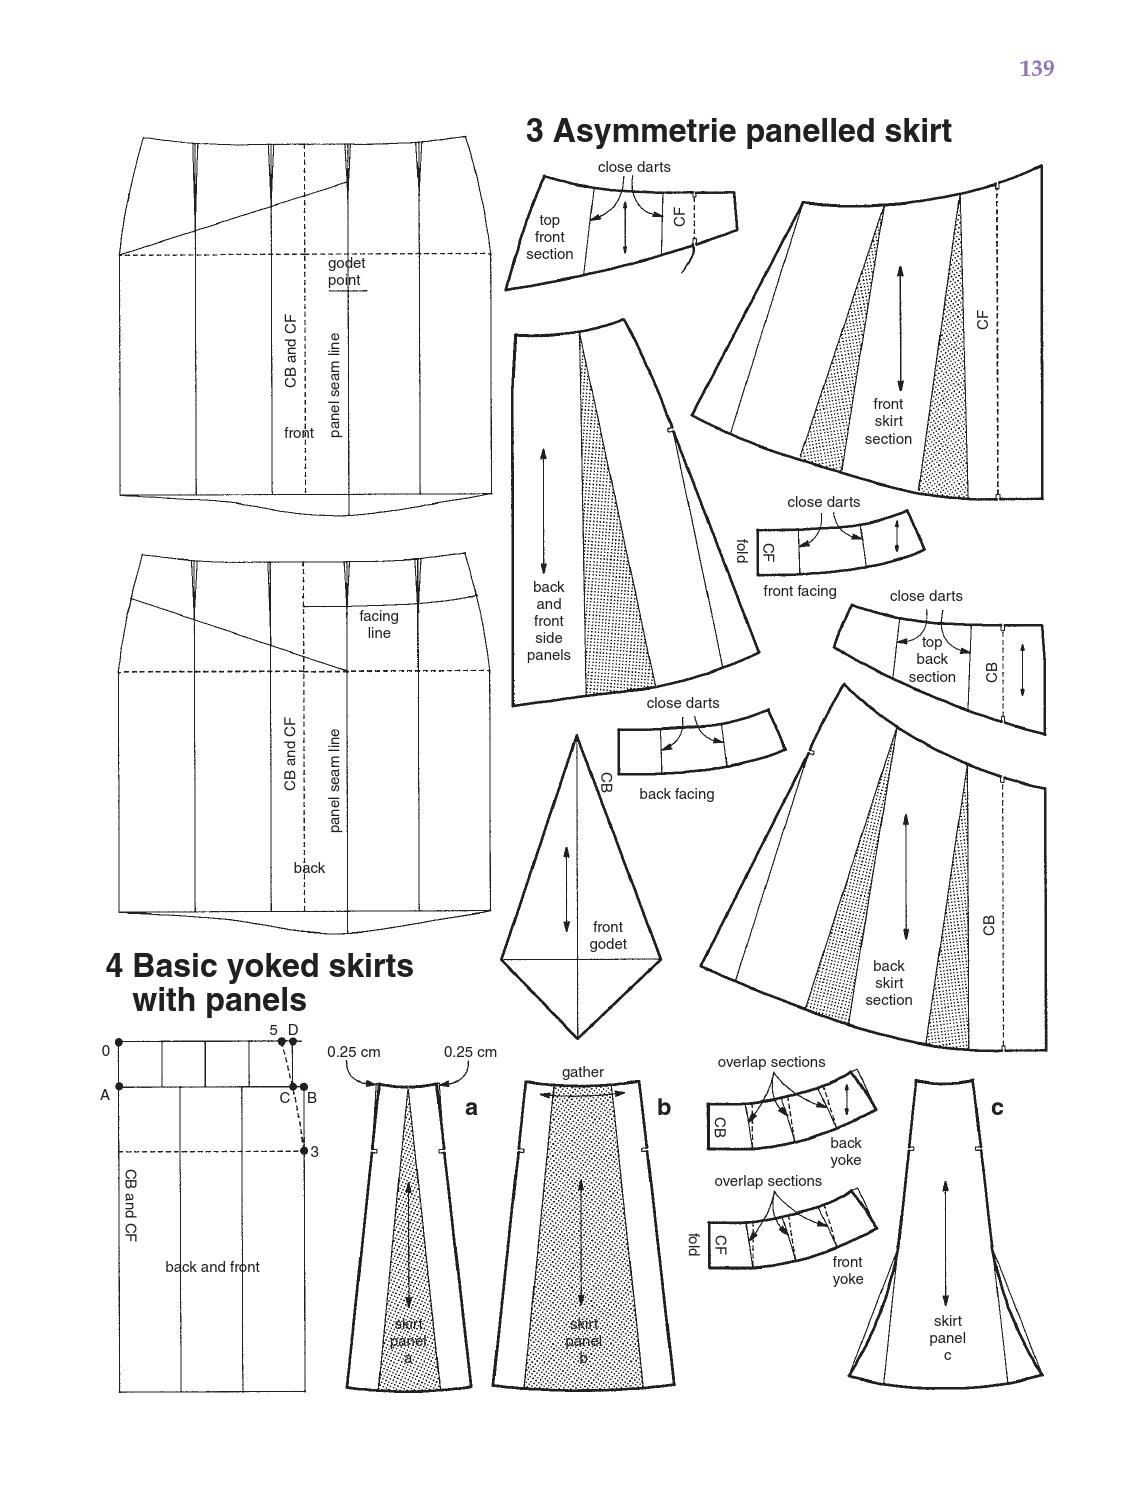 Metric pattern cutting for womens wear pattern cutting patterns metric pattern cutting for womens wear by shgodesign issuu fandeluxe Image collections